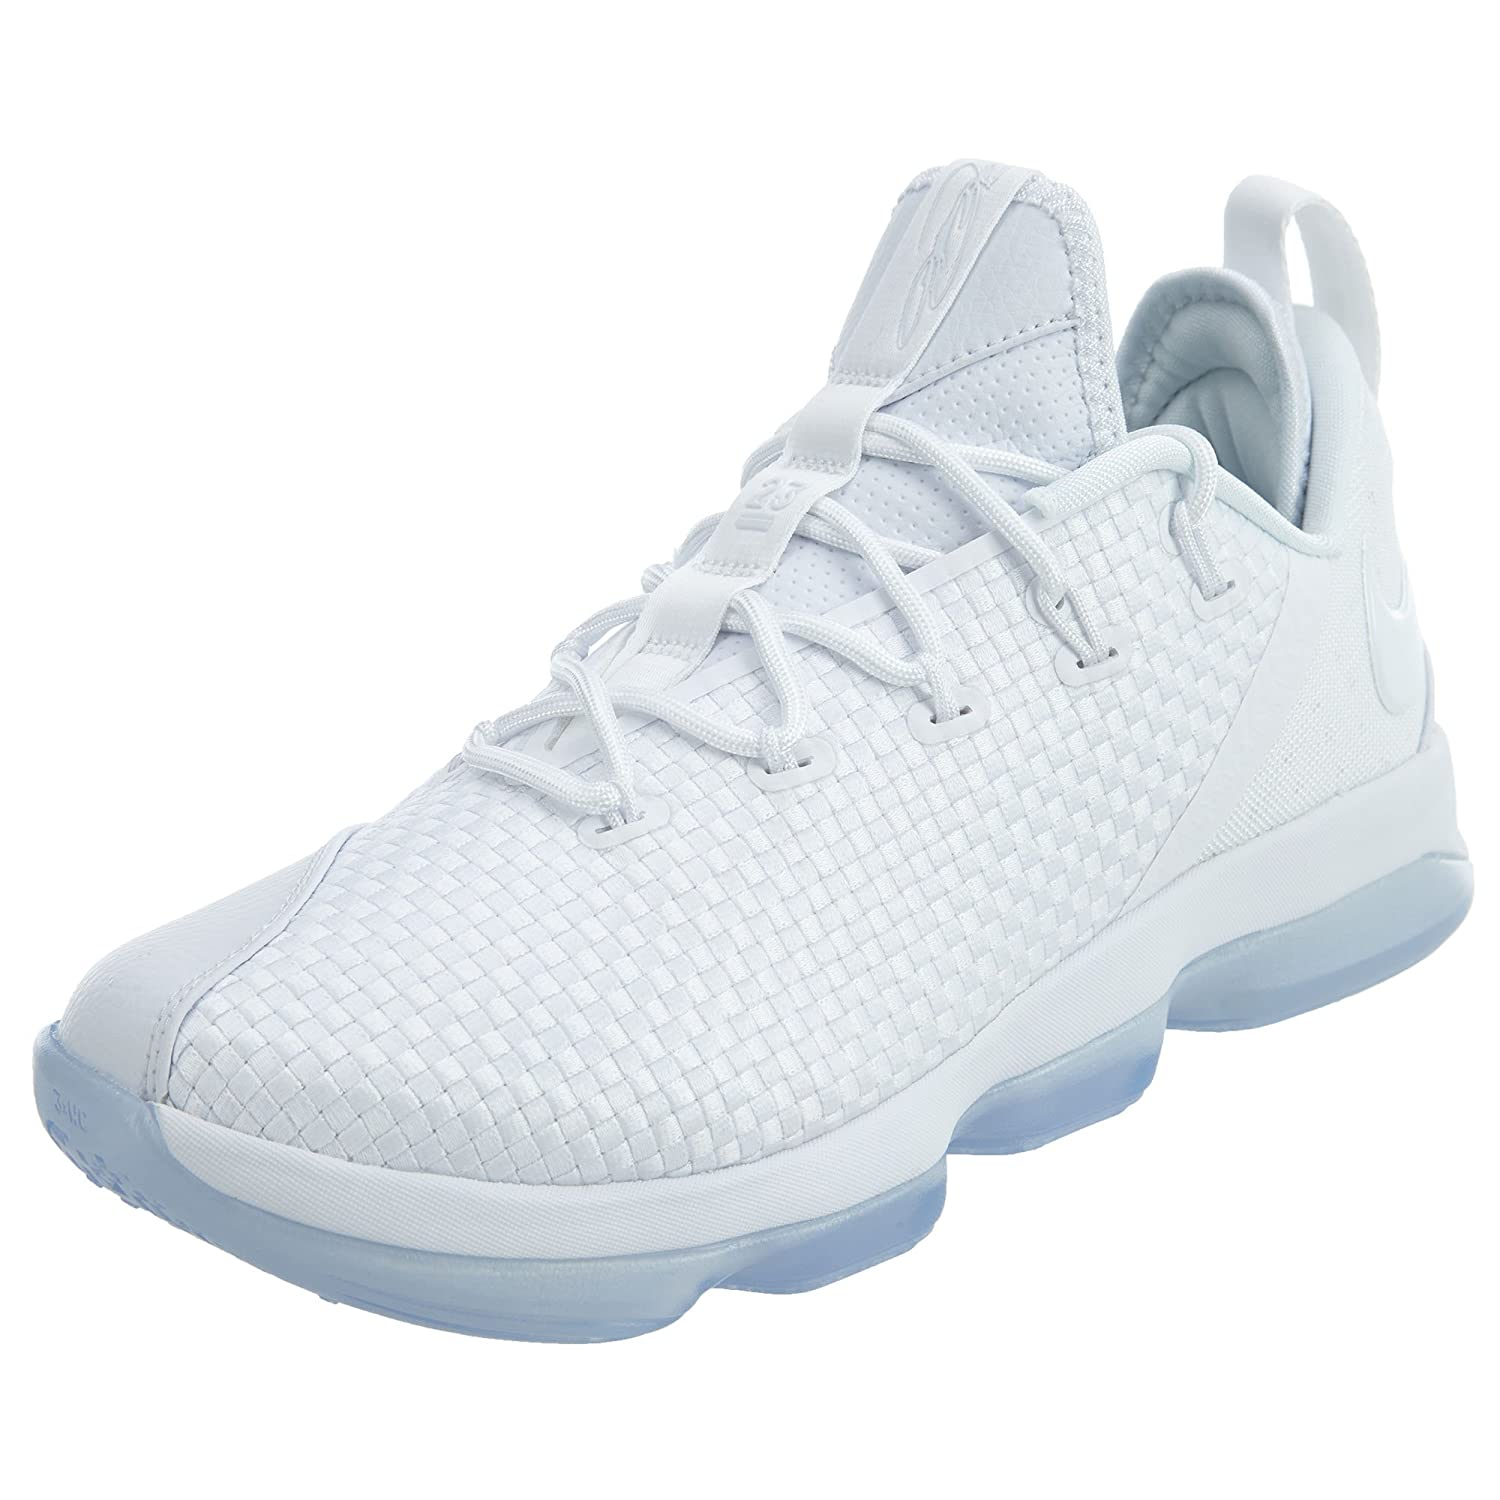 newest f25f7 82e59 Nike Lebron XIV Low Mens Style: 878636-106, White/White-ice ...